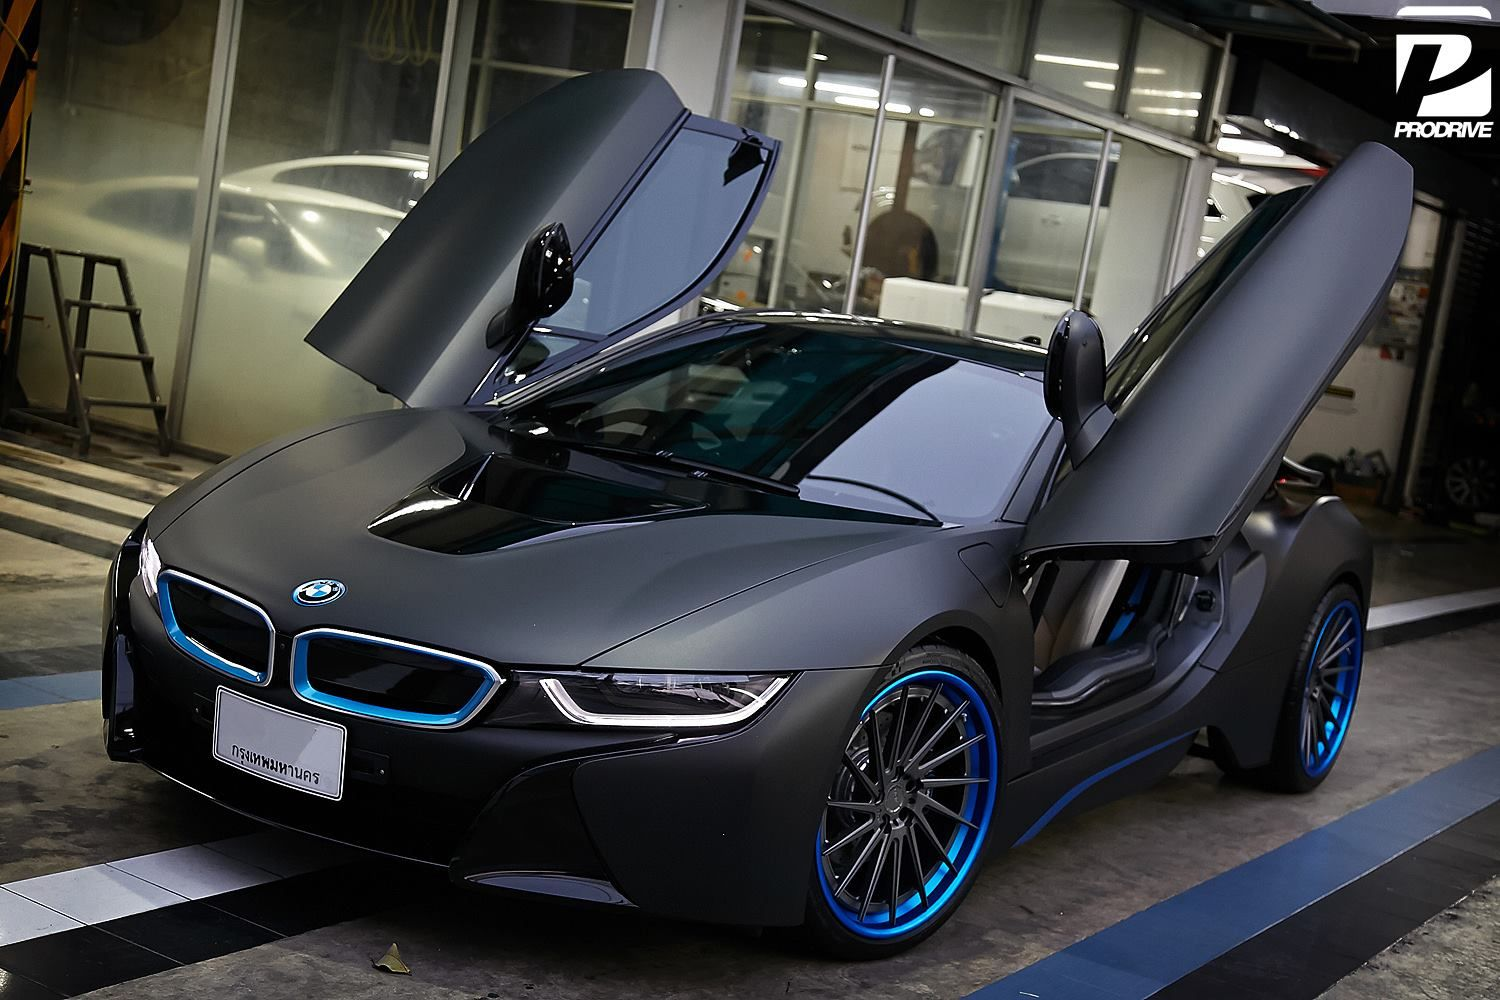 Worksheet. BMW i8 with ADV1 wheels  Need for speed  Pinterest  Bmw i8